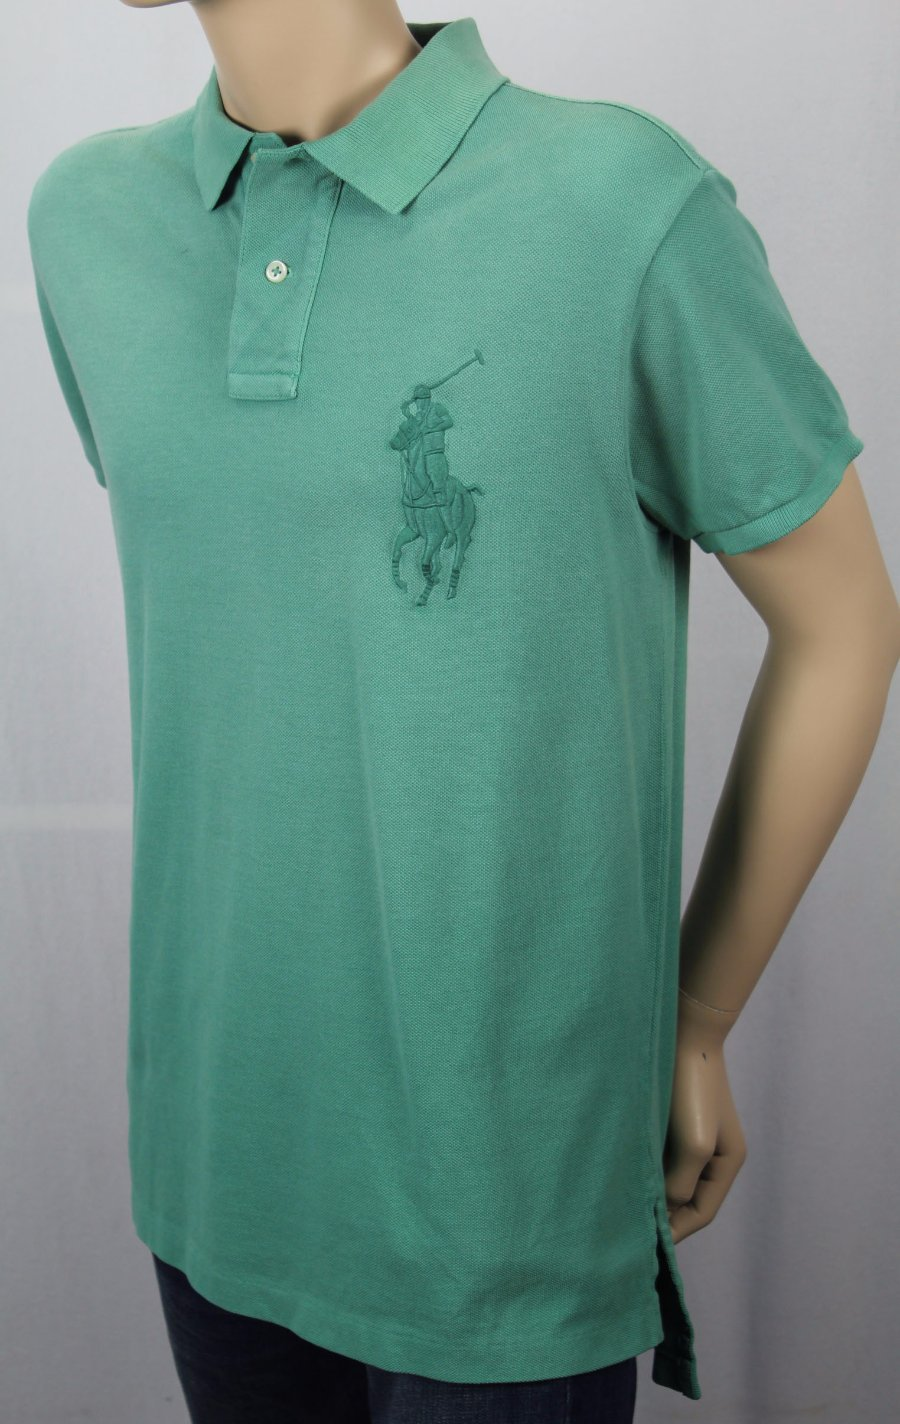 Polo Ralph Lauren Green Custom Fit Mesh Long Sleeve Shirt NWT